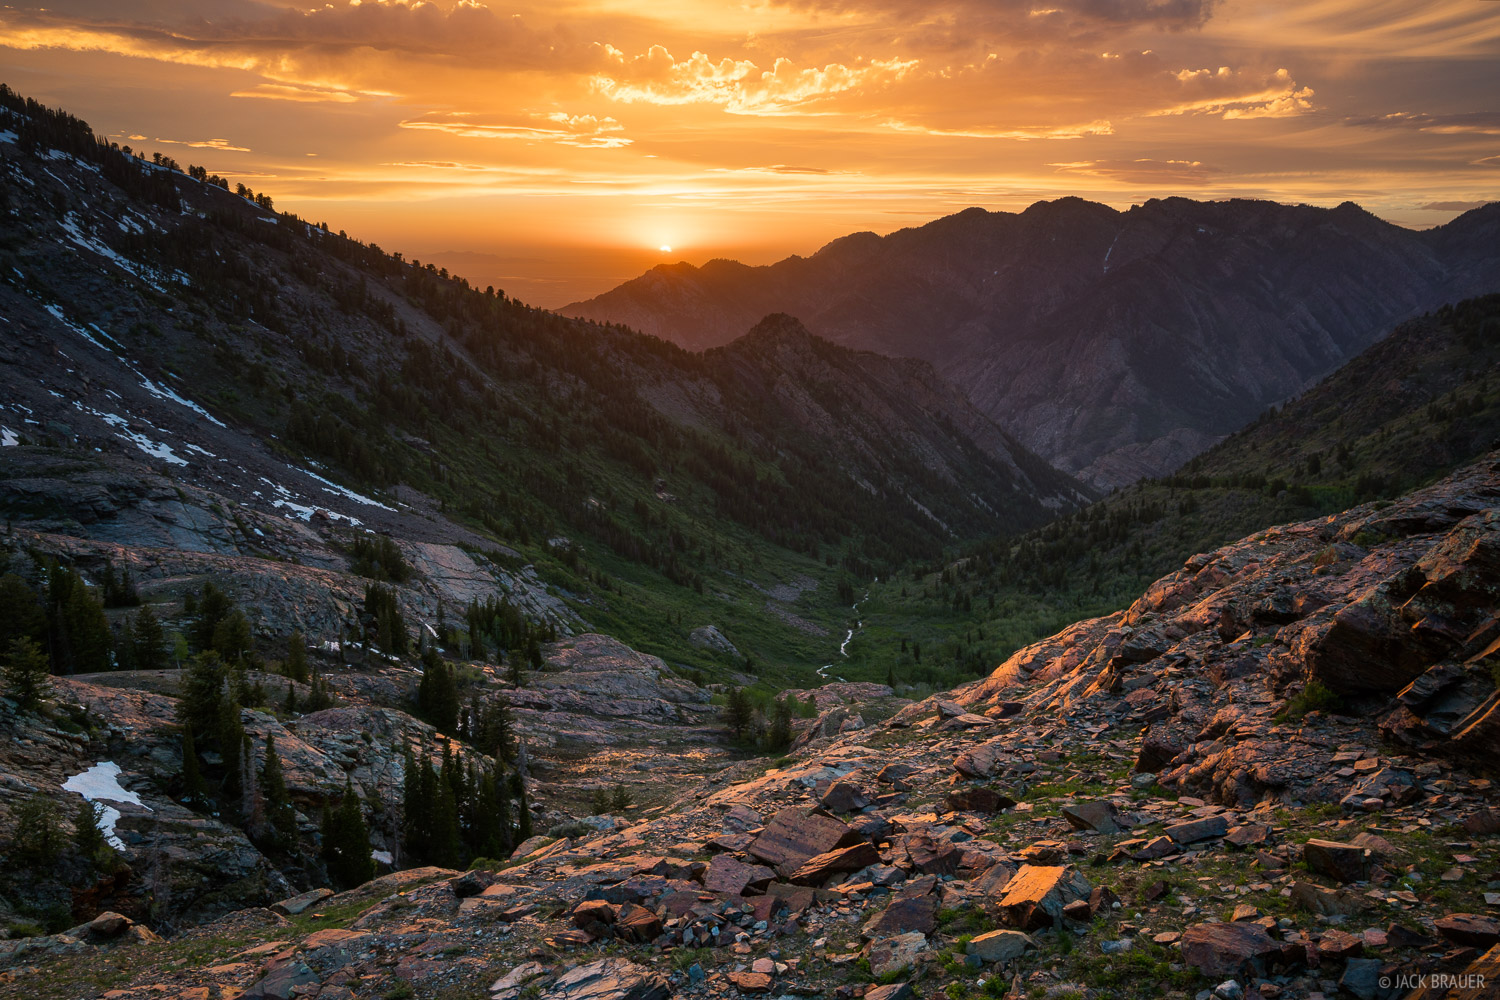 Lake Blanche, Twin Peaks Wilderness, Utah, Wasatch Range, sunset, Big Cottonwood Canyon